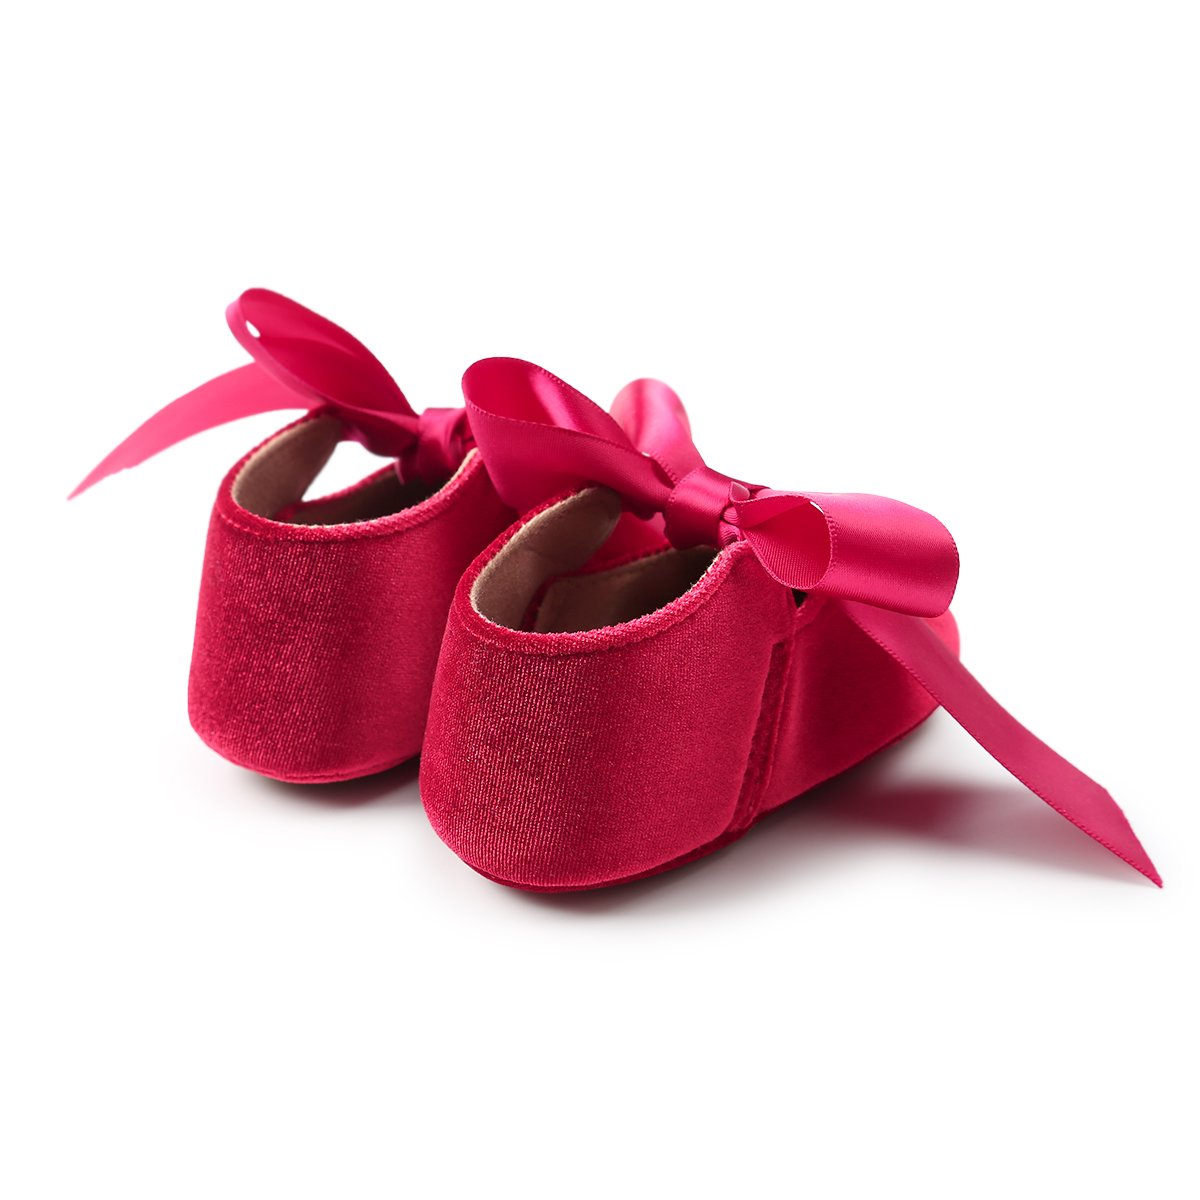 PanGa Baby Girls Mary Jane Flats Anti-Slip Princess Dress Shoes Soft Rubber Sole with Bow-Knot Toddler First Walkers Party Dress Shoes